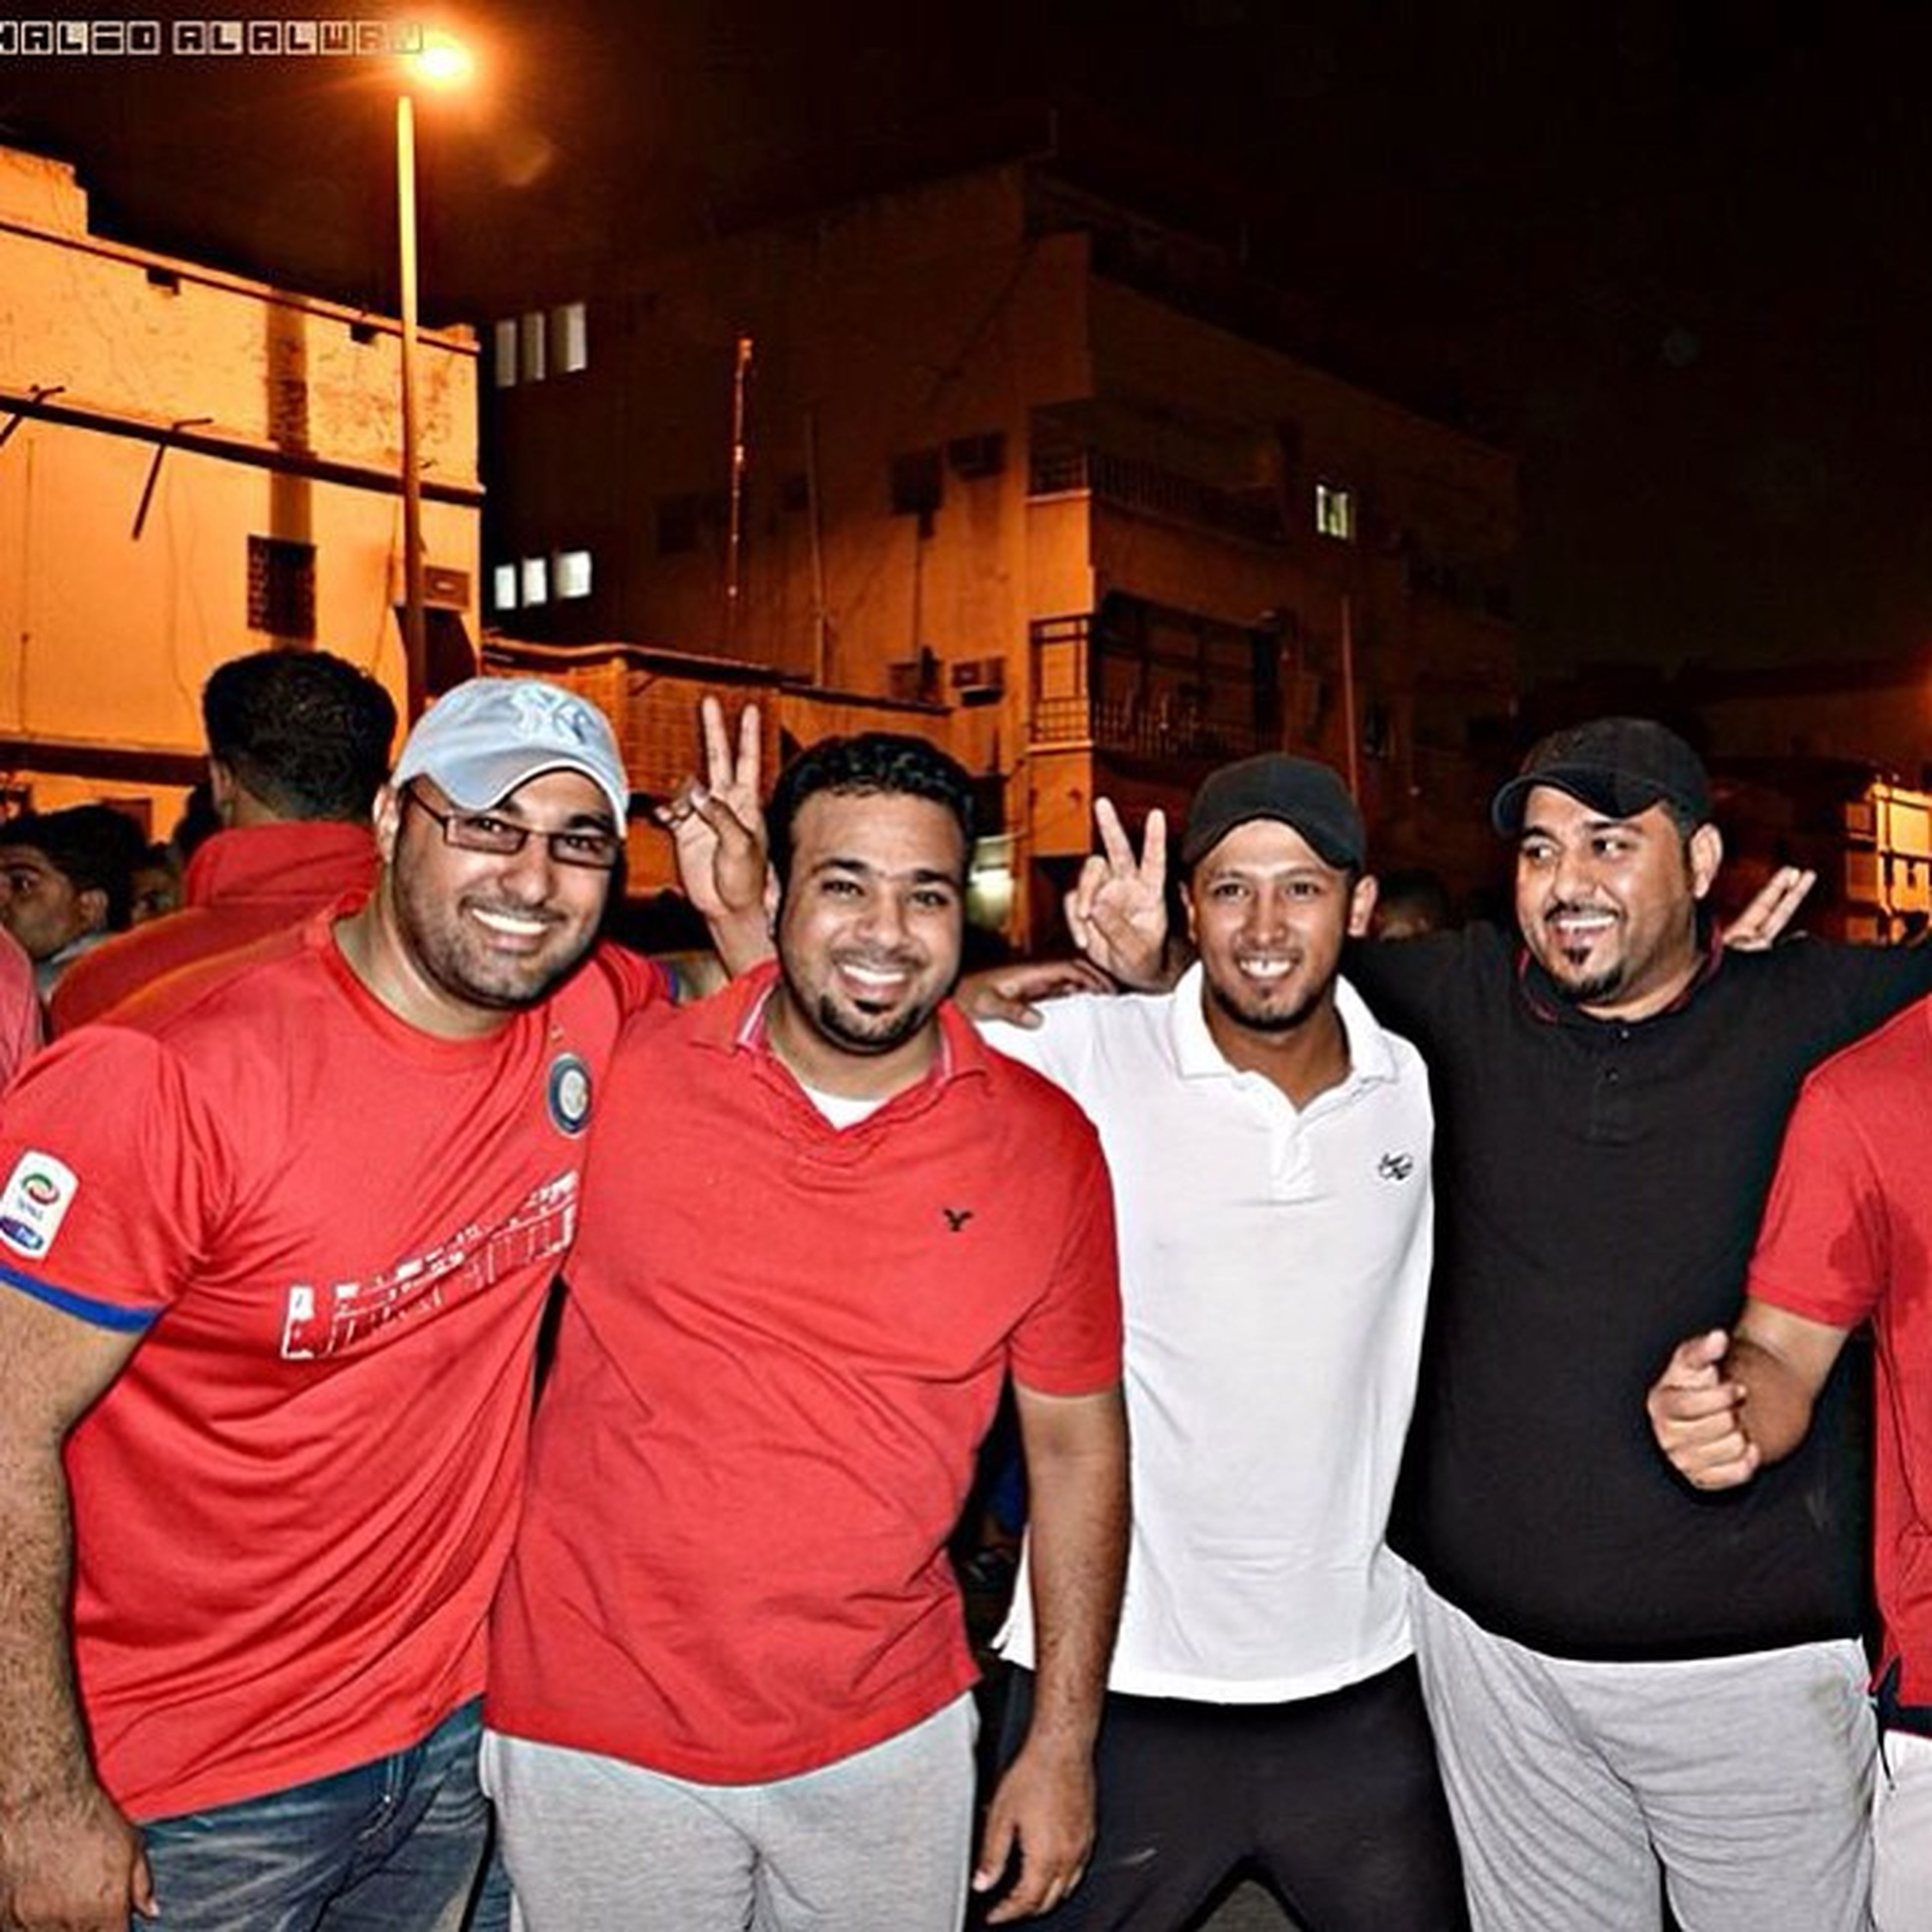 lifestyles, casual clothing, leisure activity, standing, togetherness, illuminated, night, front view, portrait, men, looking at camera, three quarter length, waist up, young men, person, young adult, friendship